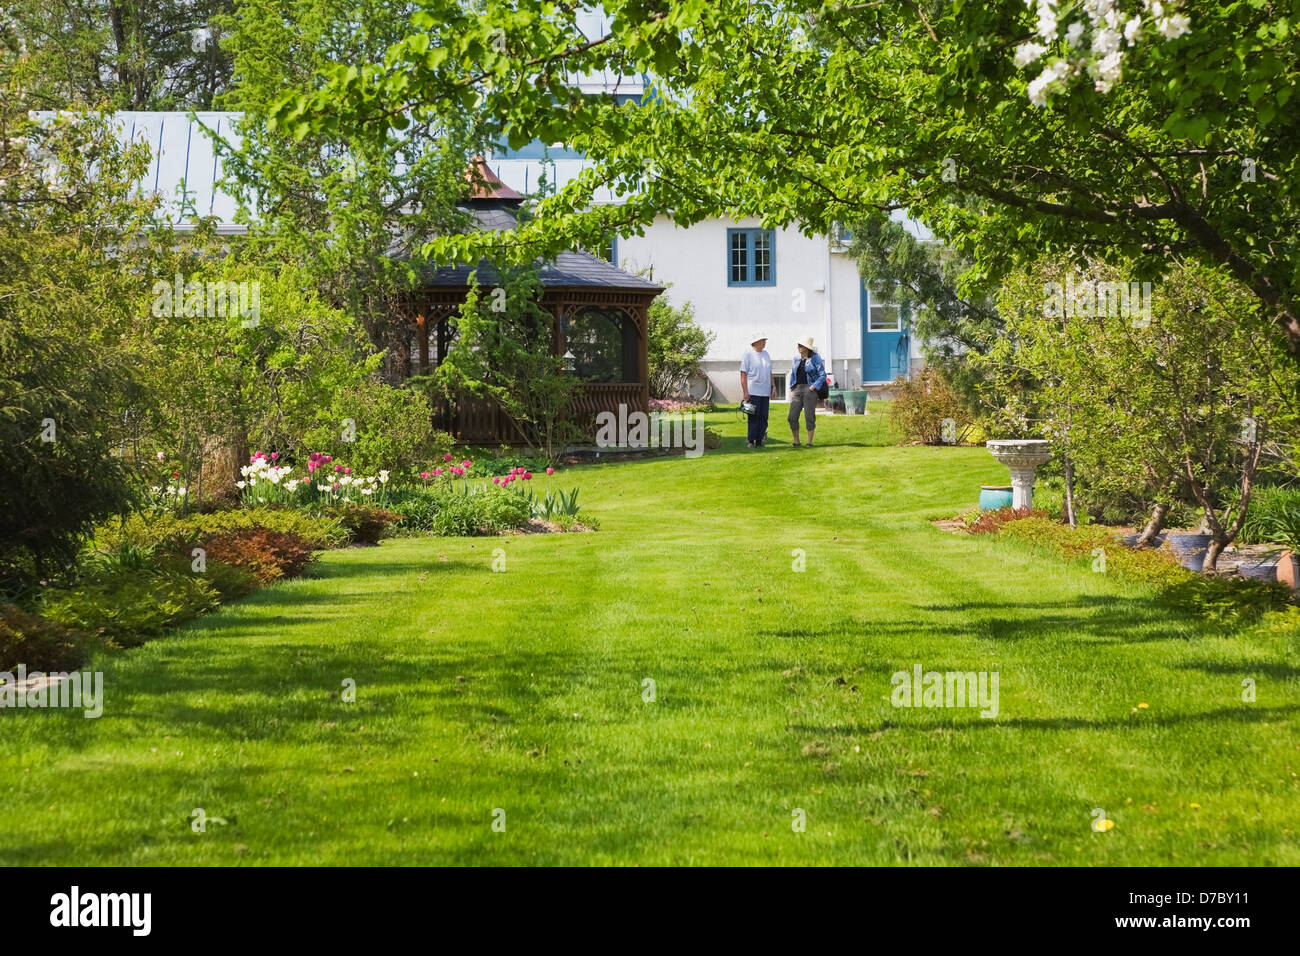 Owner And Friend On Lawn With Apple Tree In Blossom In Residential Back  Yard Garden;Quebec Canada